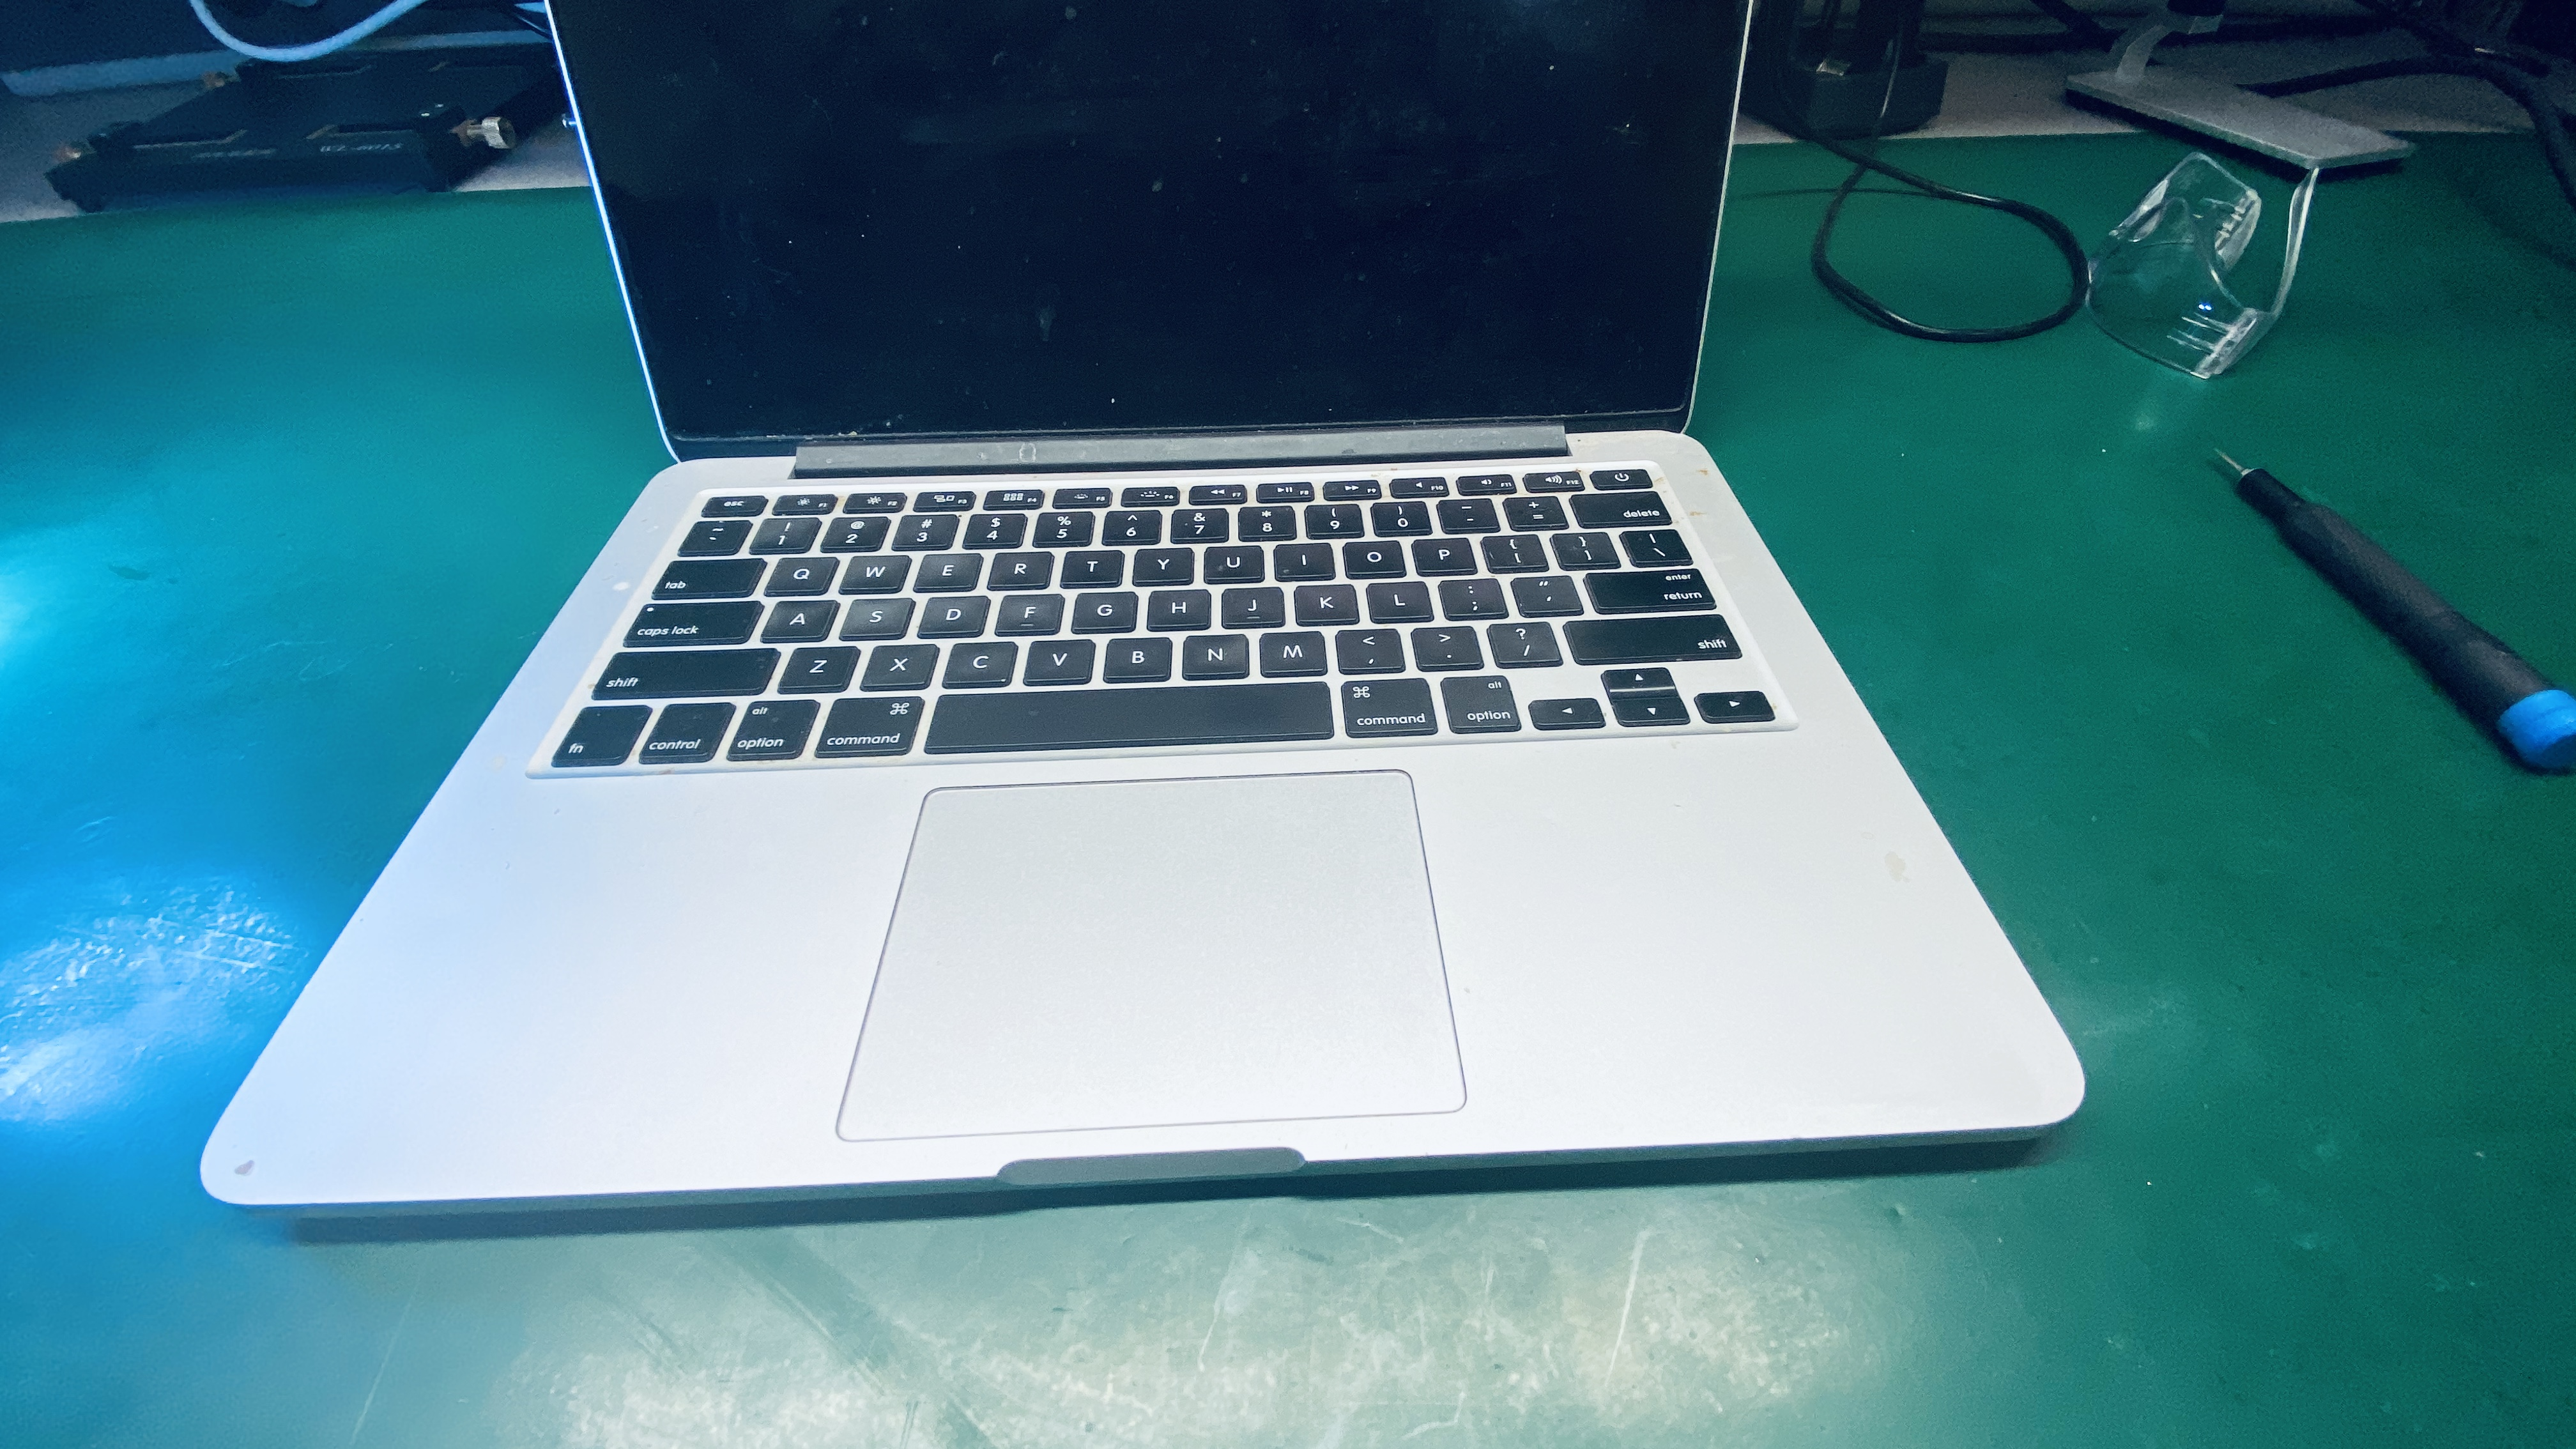 macbook does not turn on